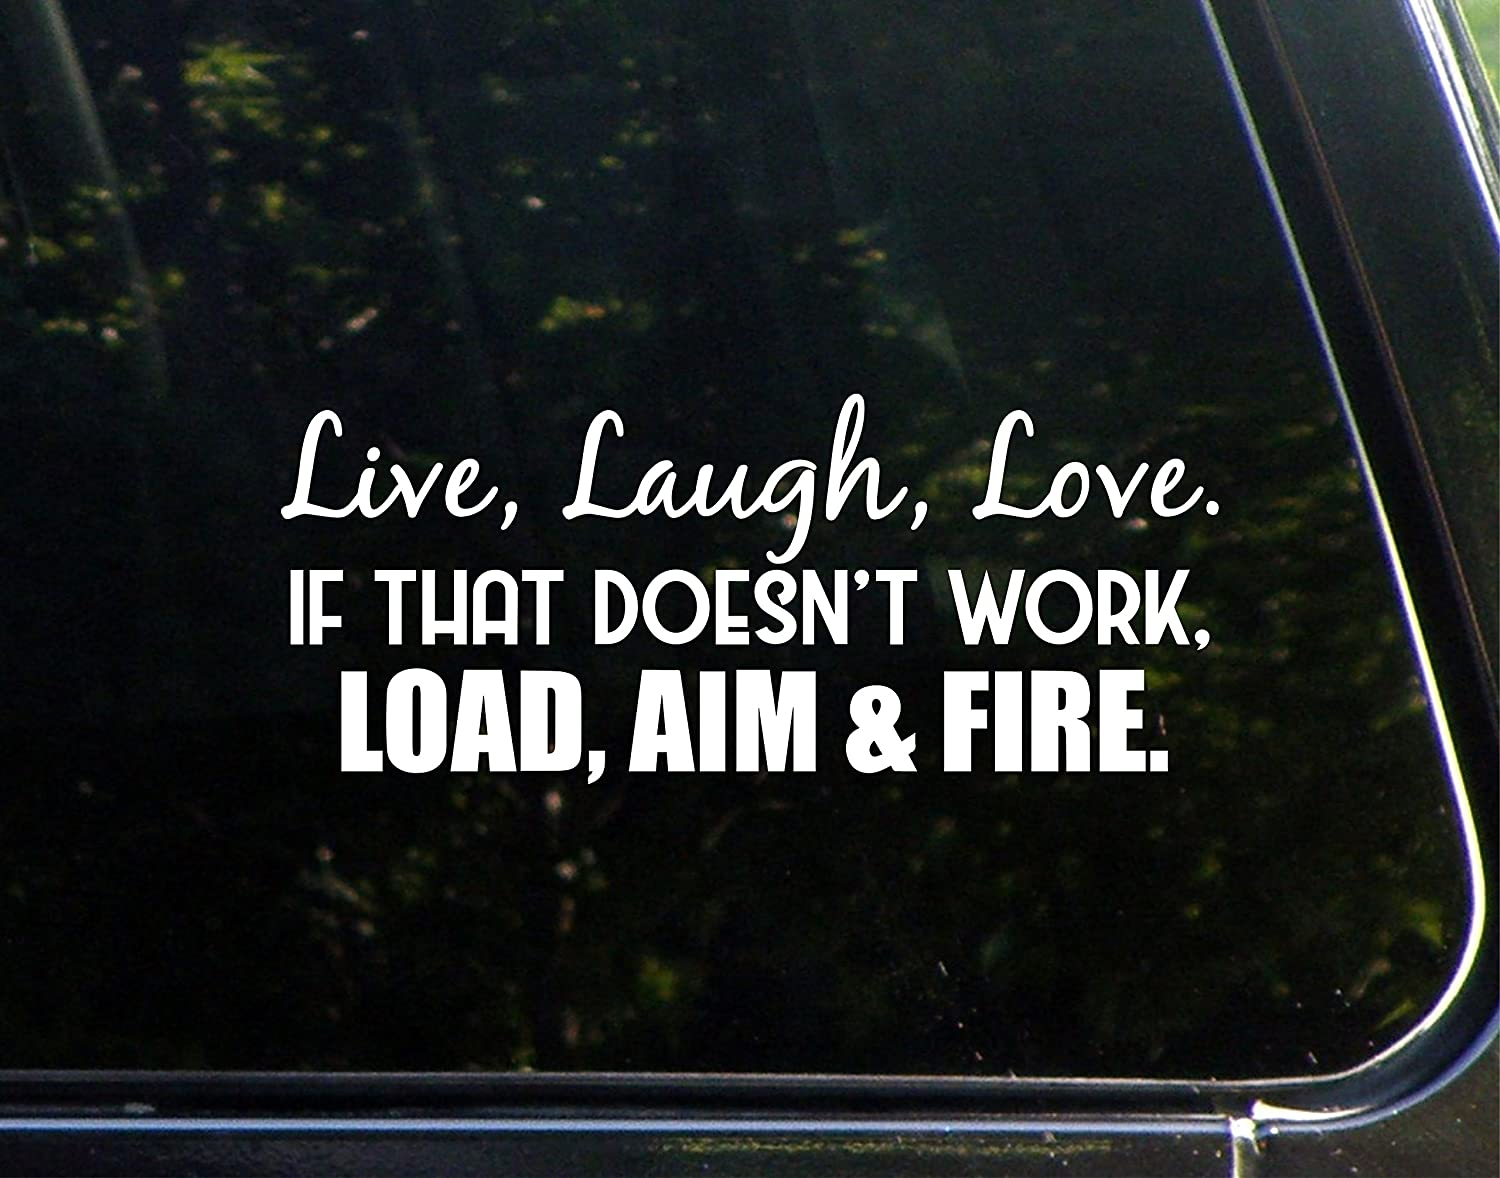 Love Love Laptops Live Vinyl Die Cut Decal// Bumper Sticker For Windows Cars If That Doesn/'t Work Sign Depot SD1-10426 - 8-3//4 x 3-3//4 Trucks Laugh Etc If That Doesnt Work Load Aim and Fire